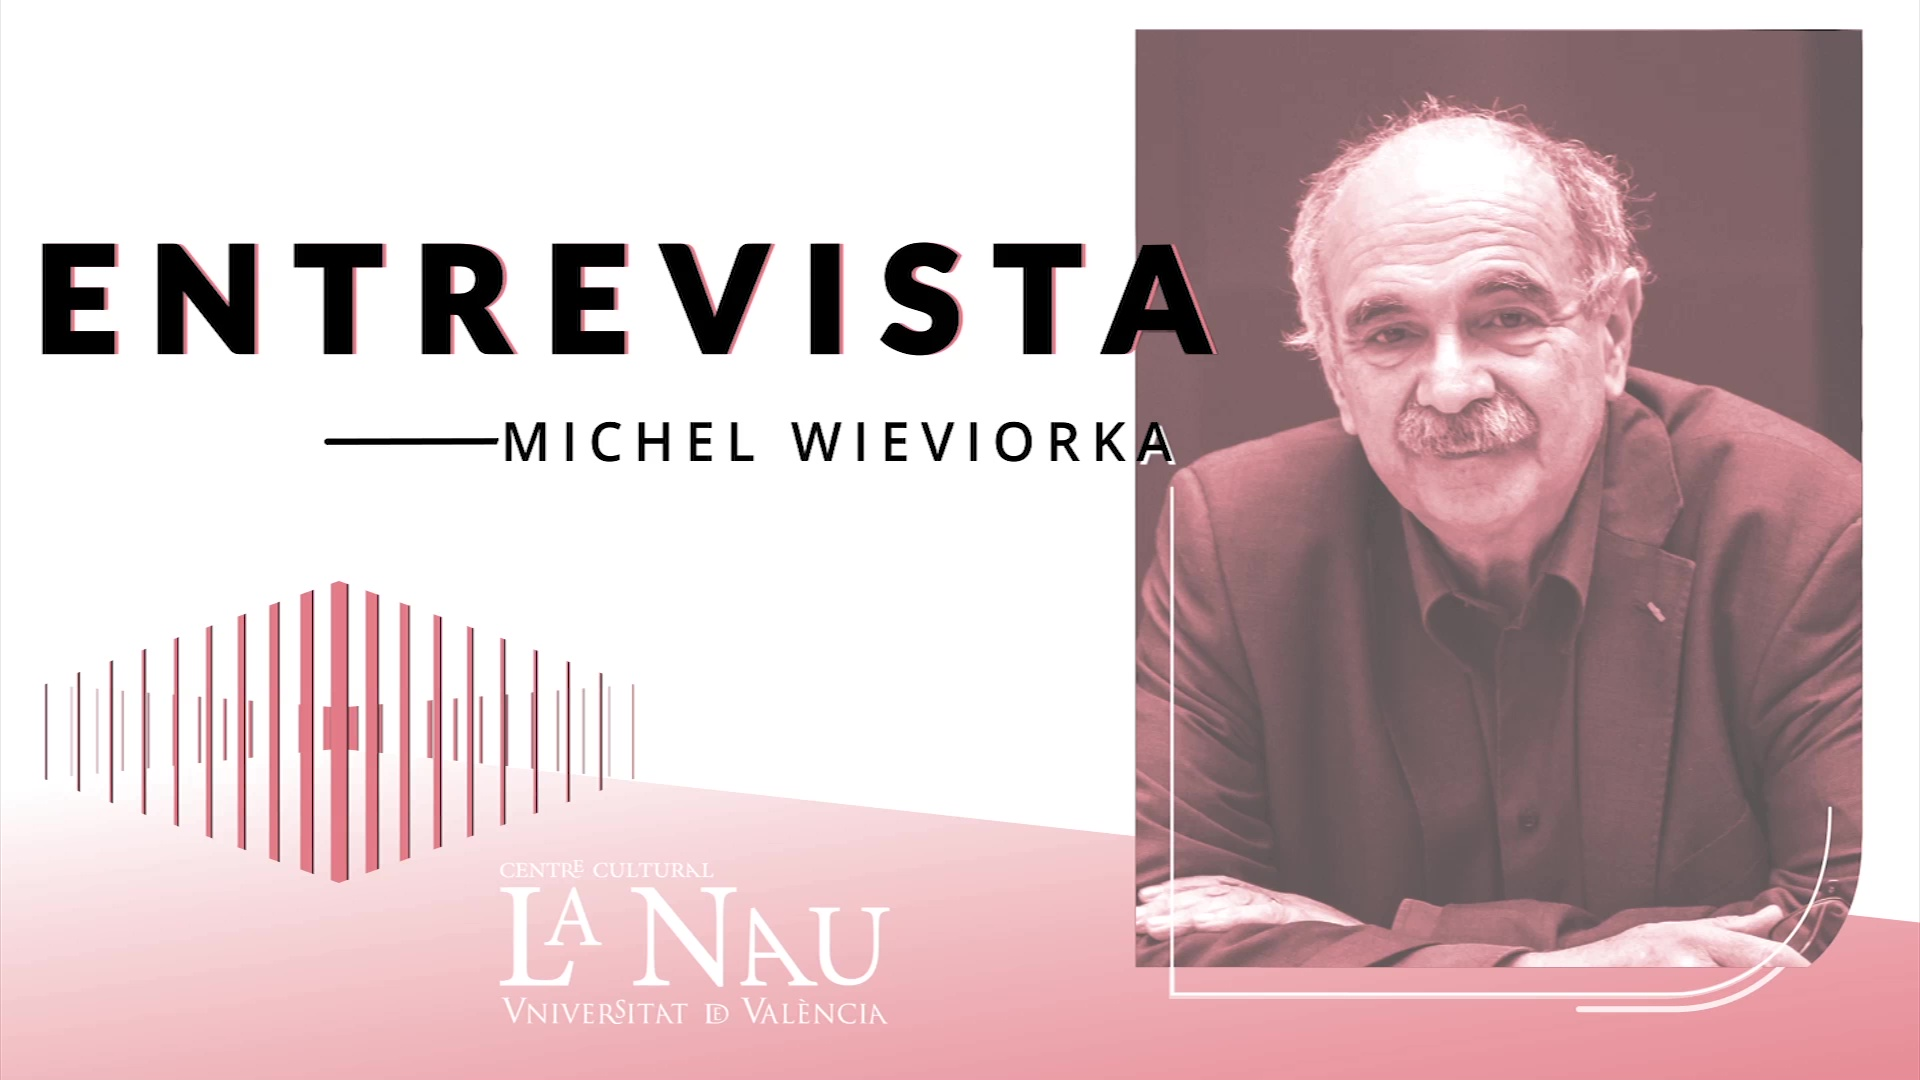 Image of the cover of the video;Entrevista a La Nau. Michel Wieviorka